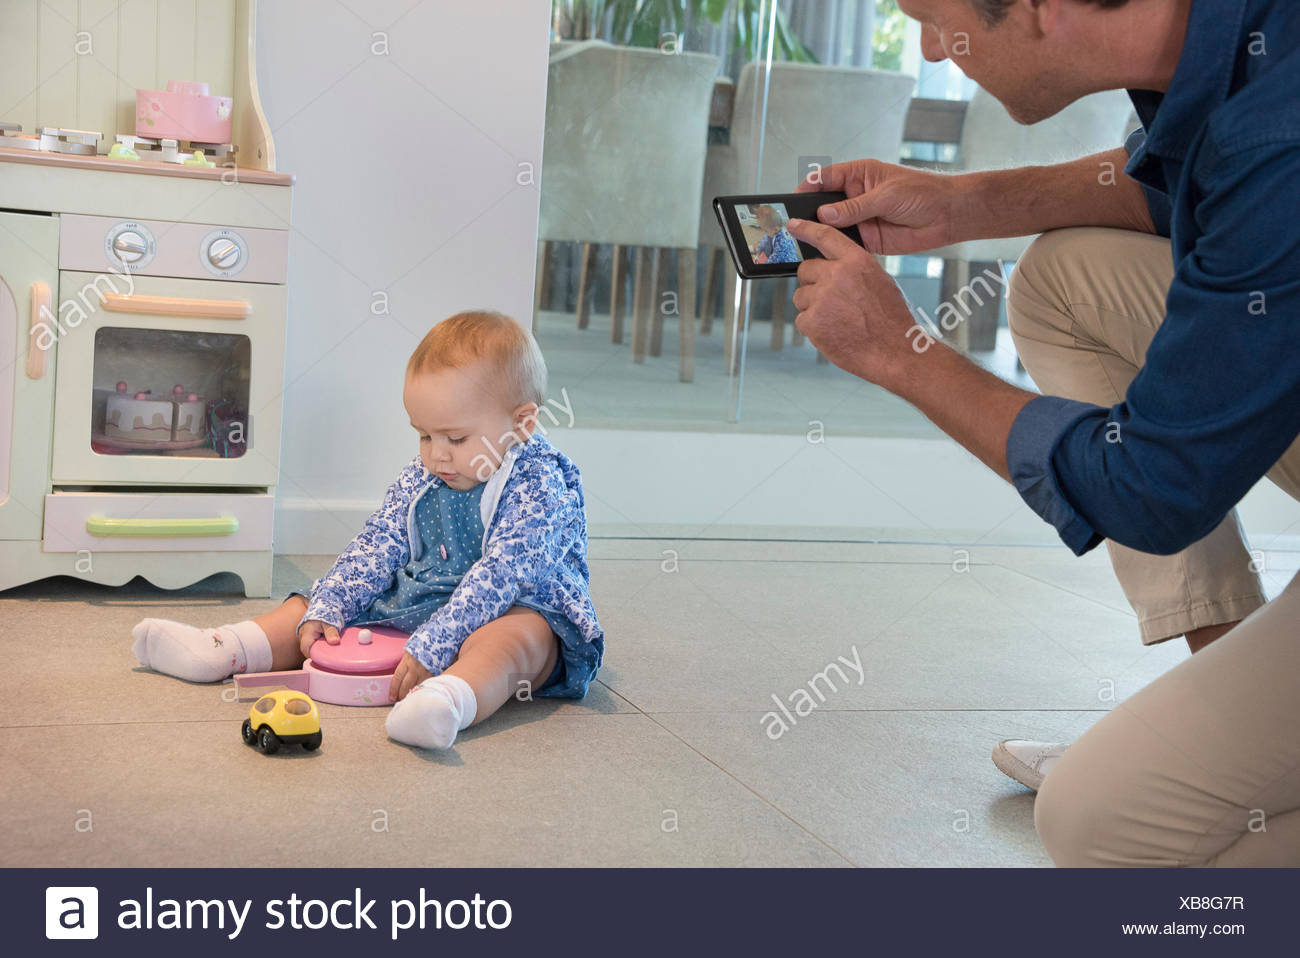 Mature man taking picture of her baby daughter playing with toys